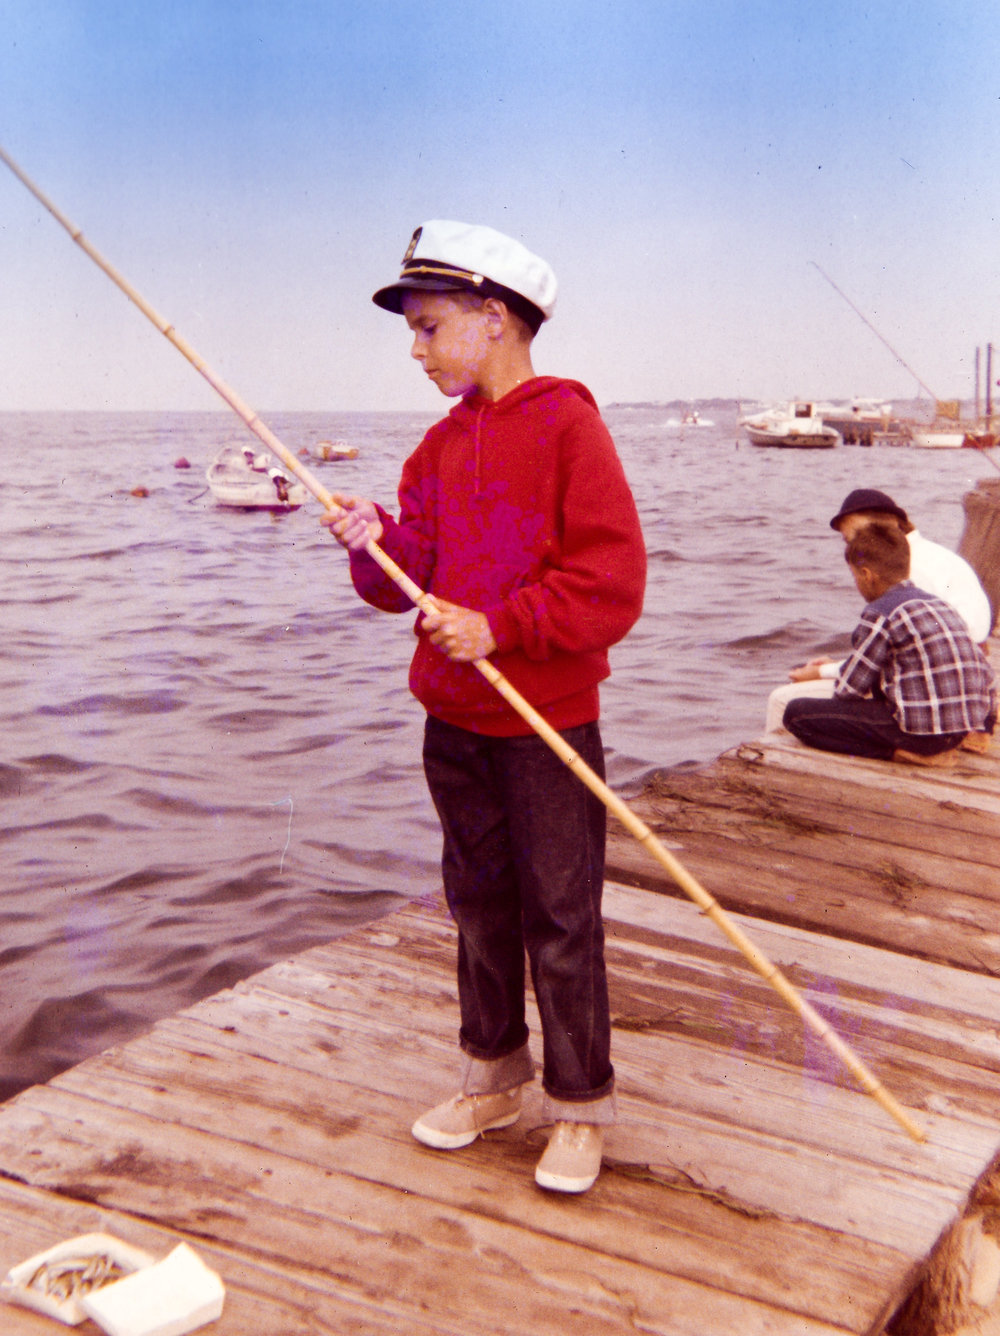 And this is me about a decade later fishing off of the same pier! This is on the Bay side of the island in the town of Ocean Beach near Houser's Hotel.